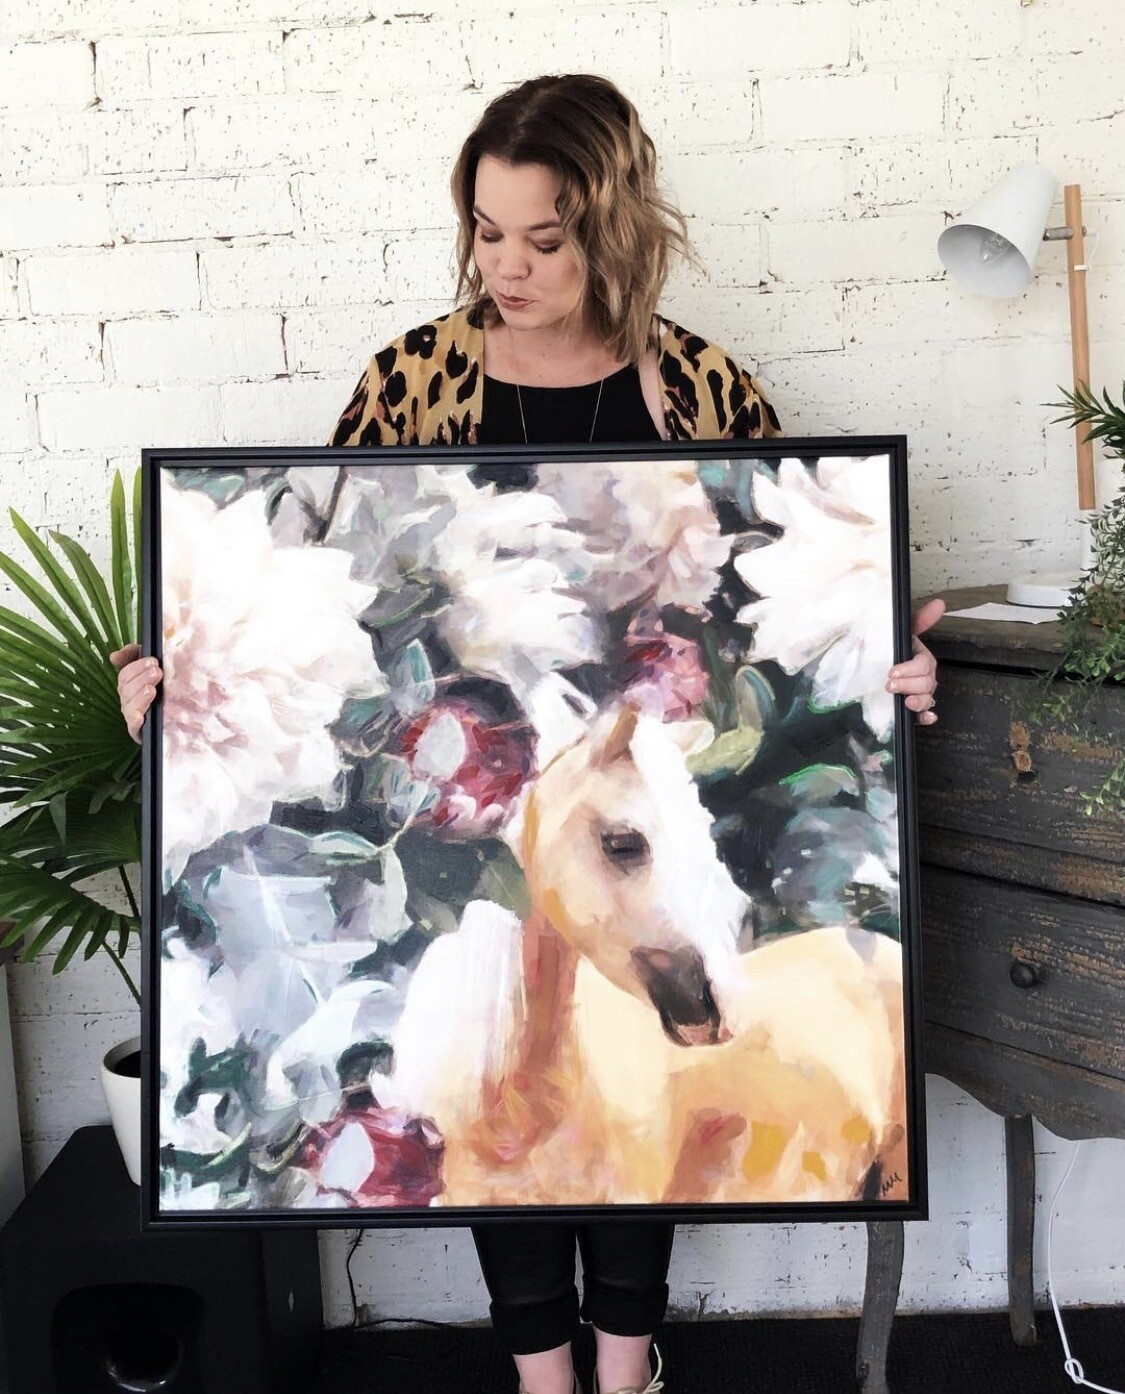 Horse flower-  Oil Embellished Limited Edition Canvas - 1 Of 1